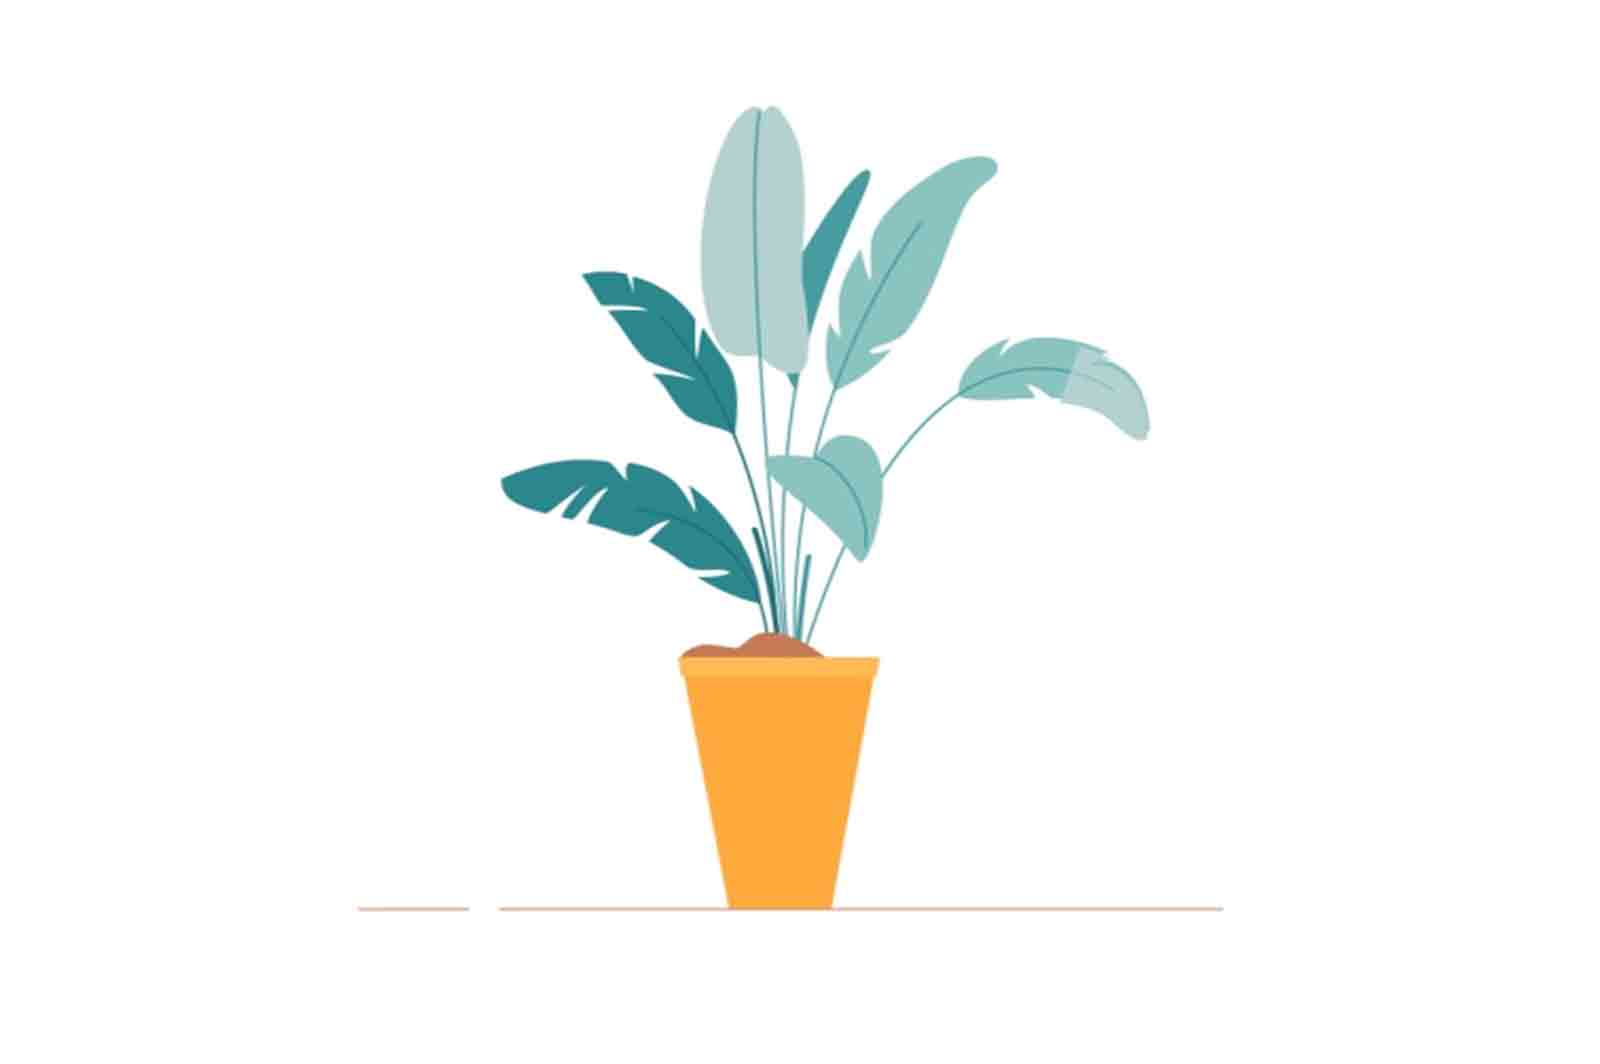 Swaying plant Animation. Lottie, After effects source files.